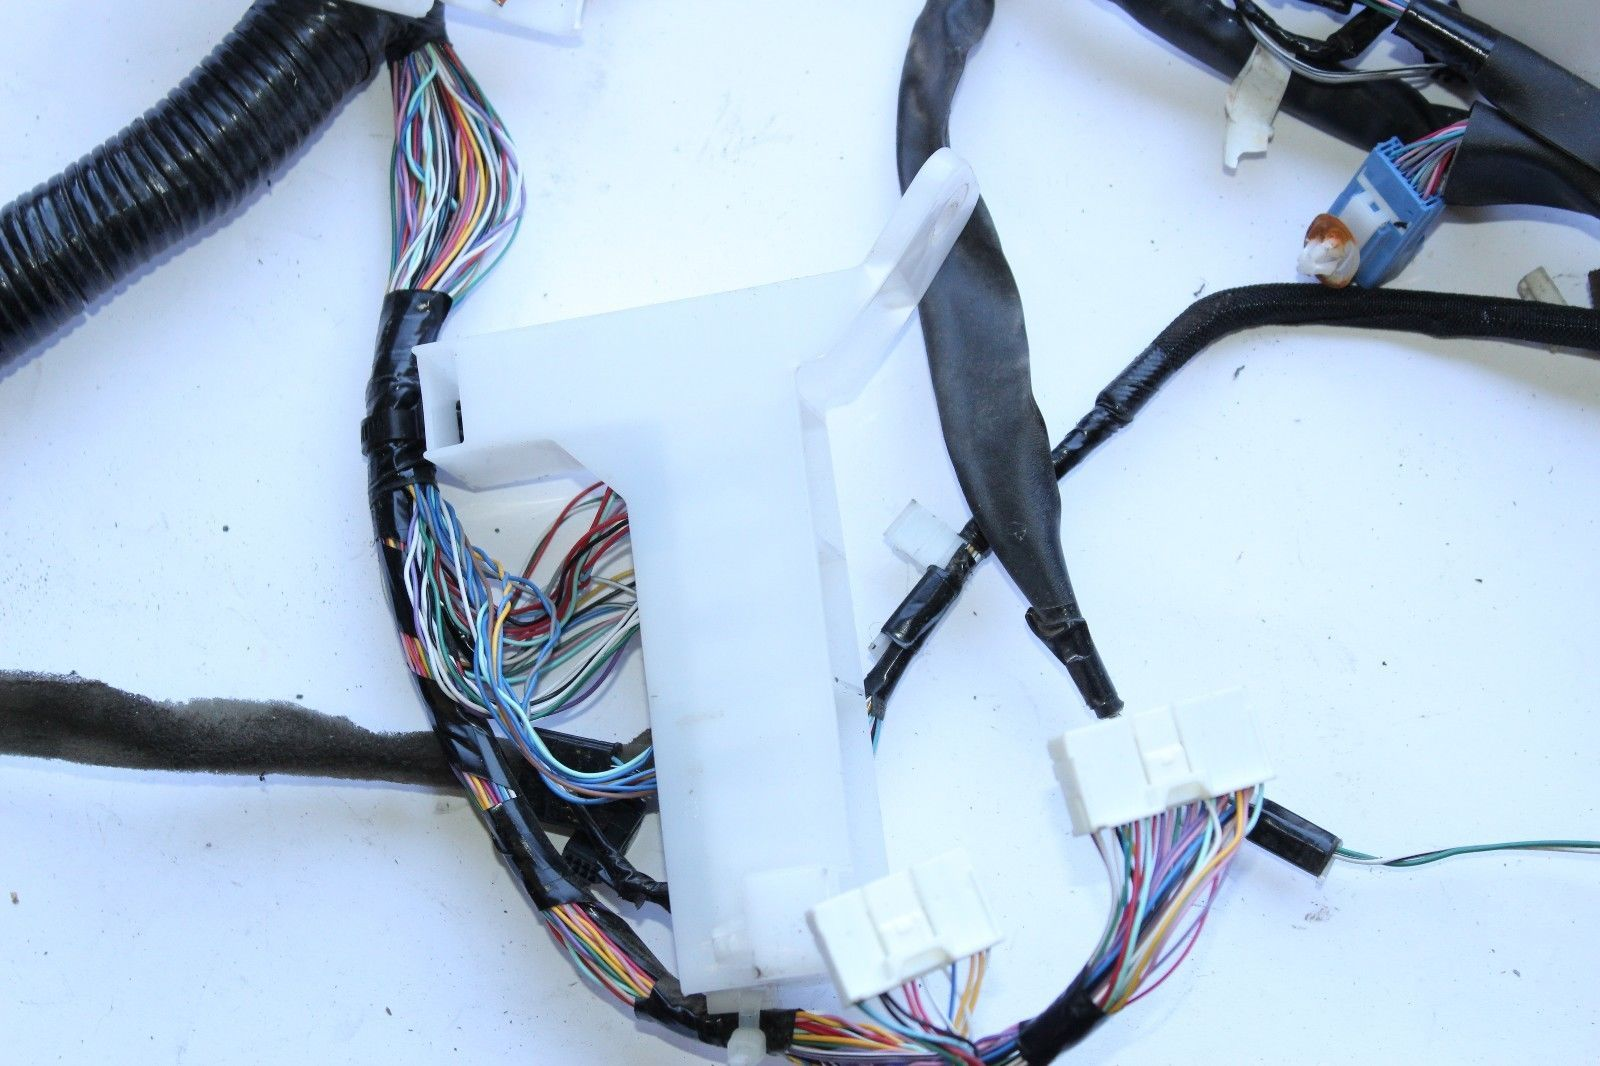 2013 2015 Lexus Rx350 Dash Wire Instrument And 50 Similar Items Trailer Hitch Wiring Harness For Rx 350 Panel J1315